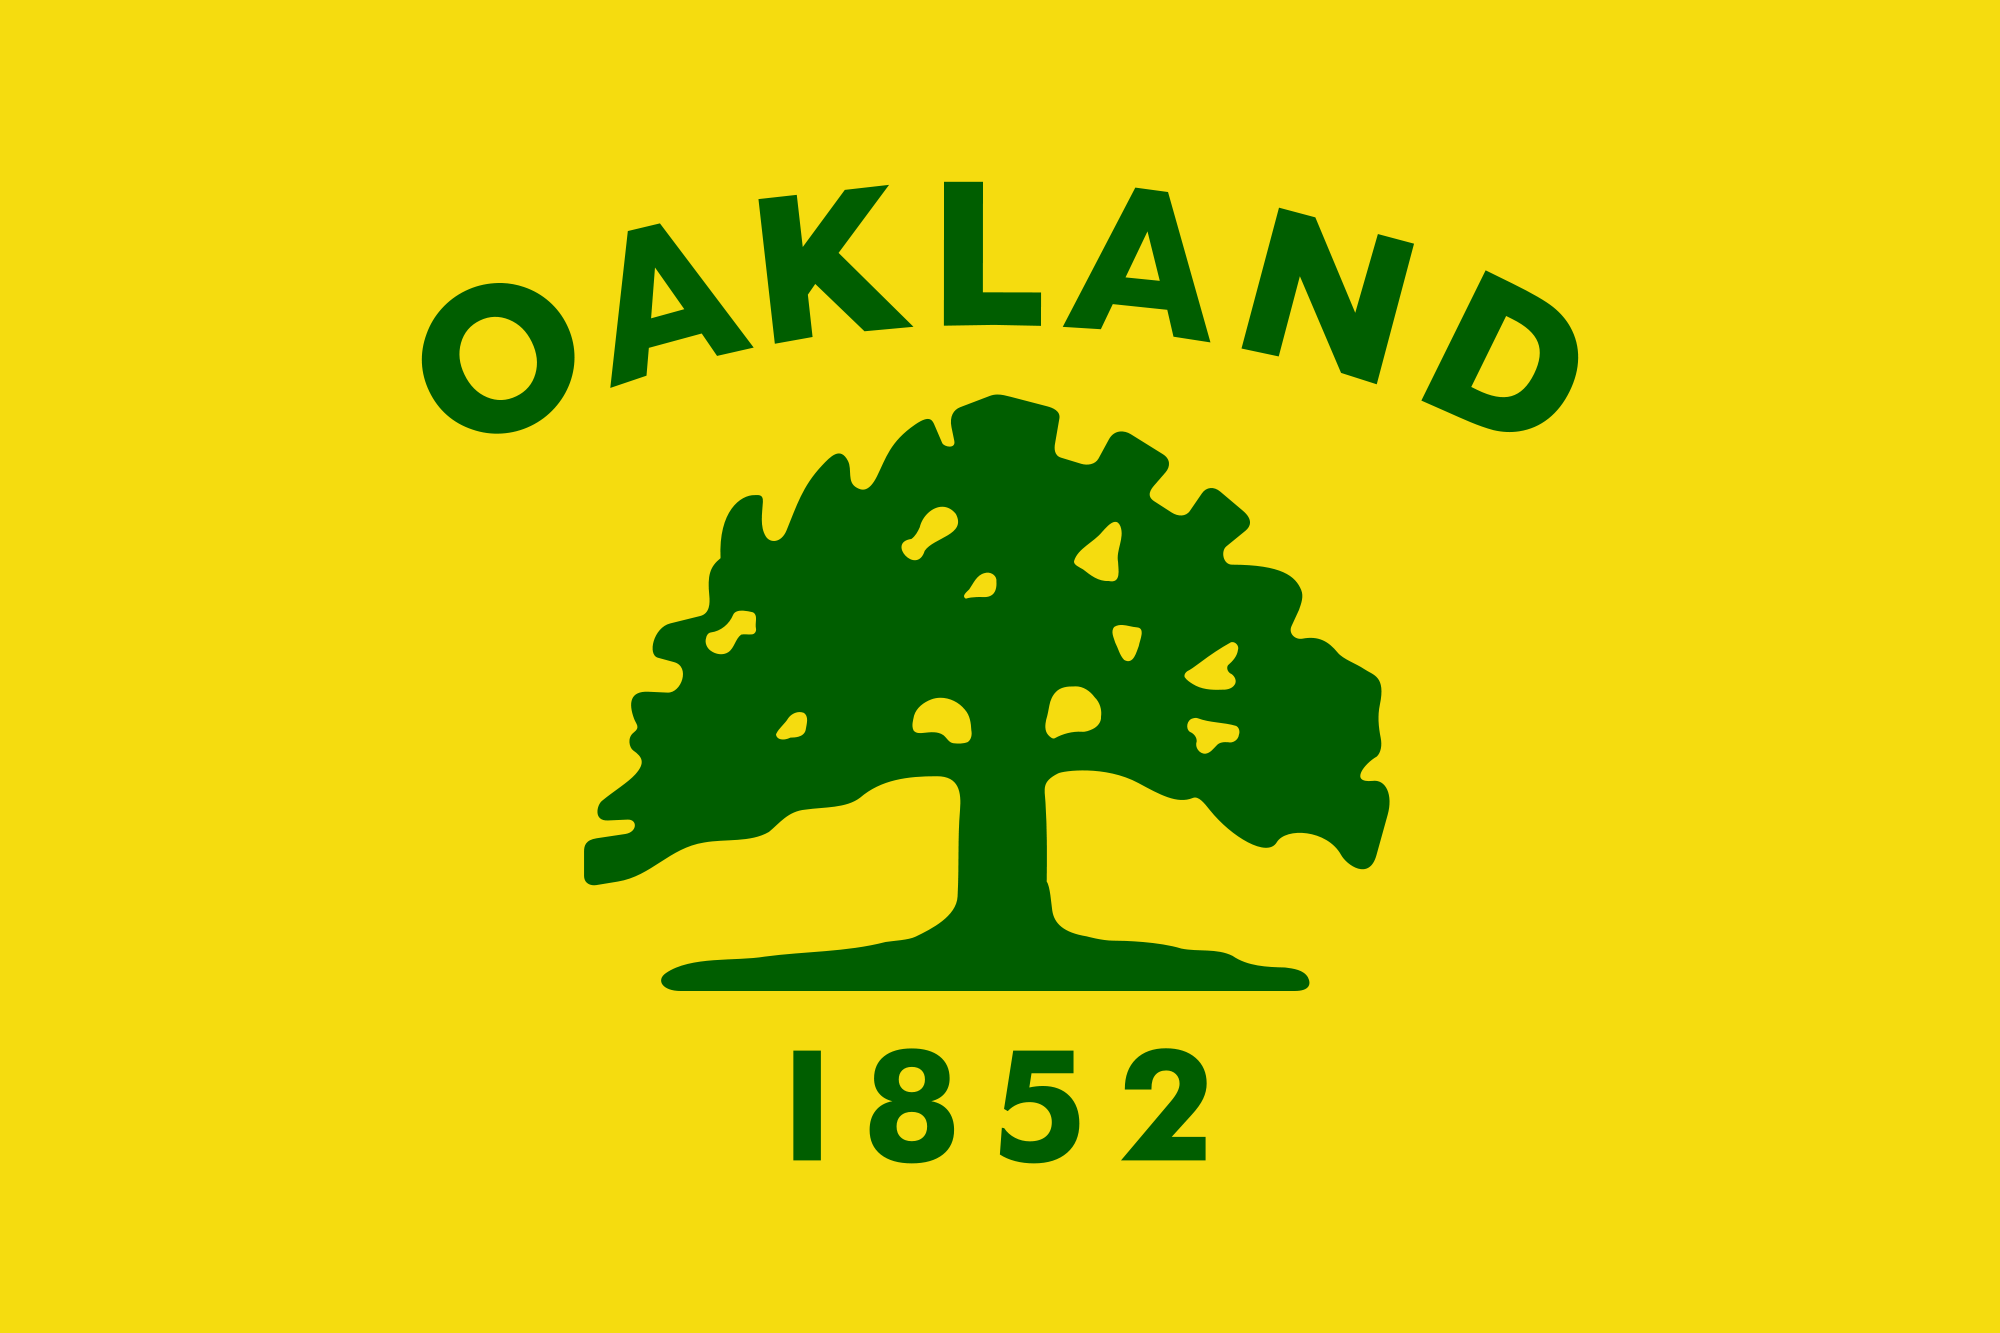 Oakland Cannabis Licensing